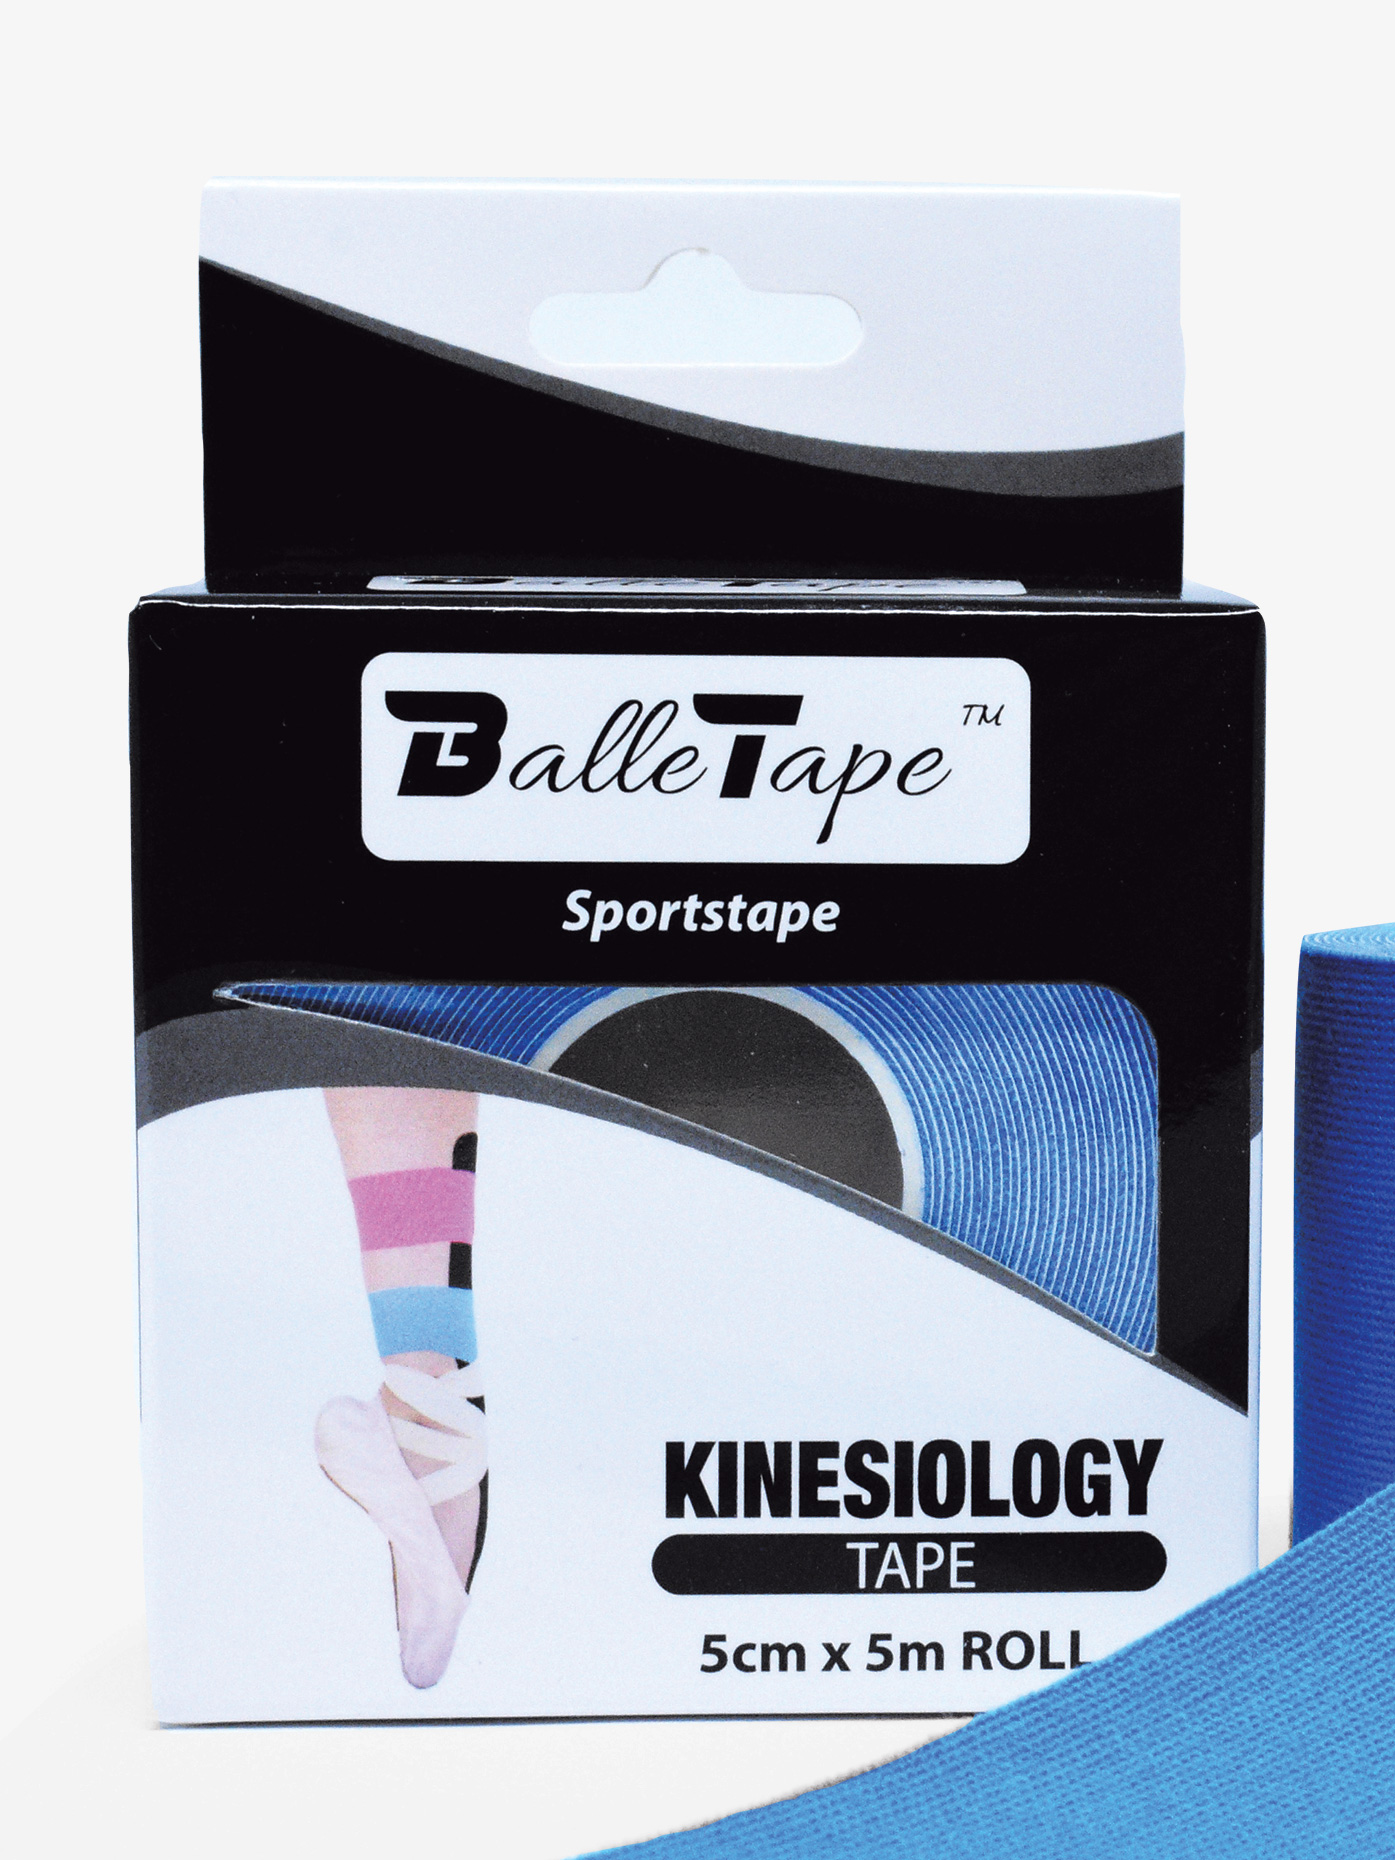 balletape_2.jpg main zoom image